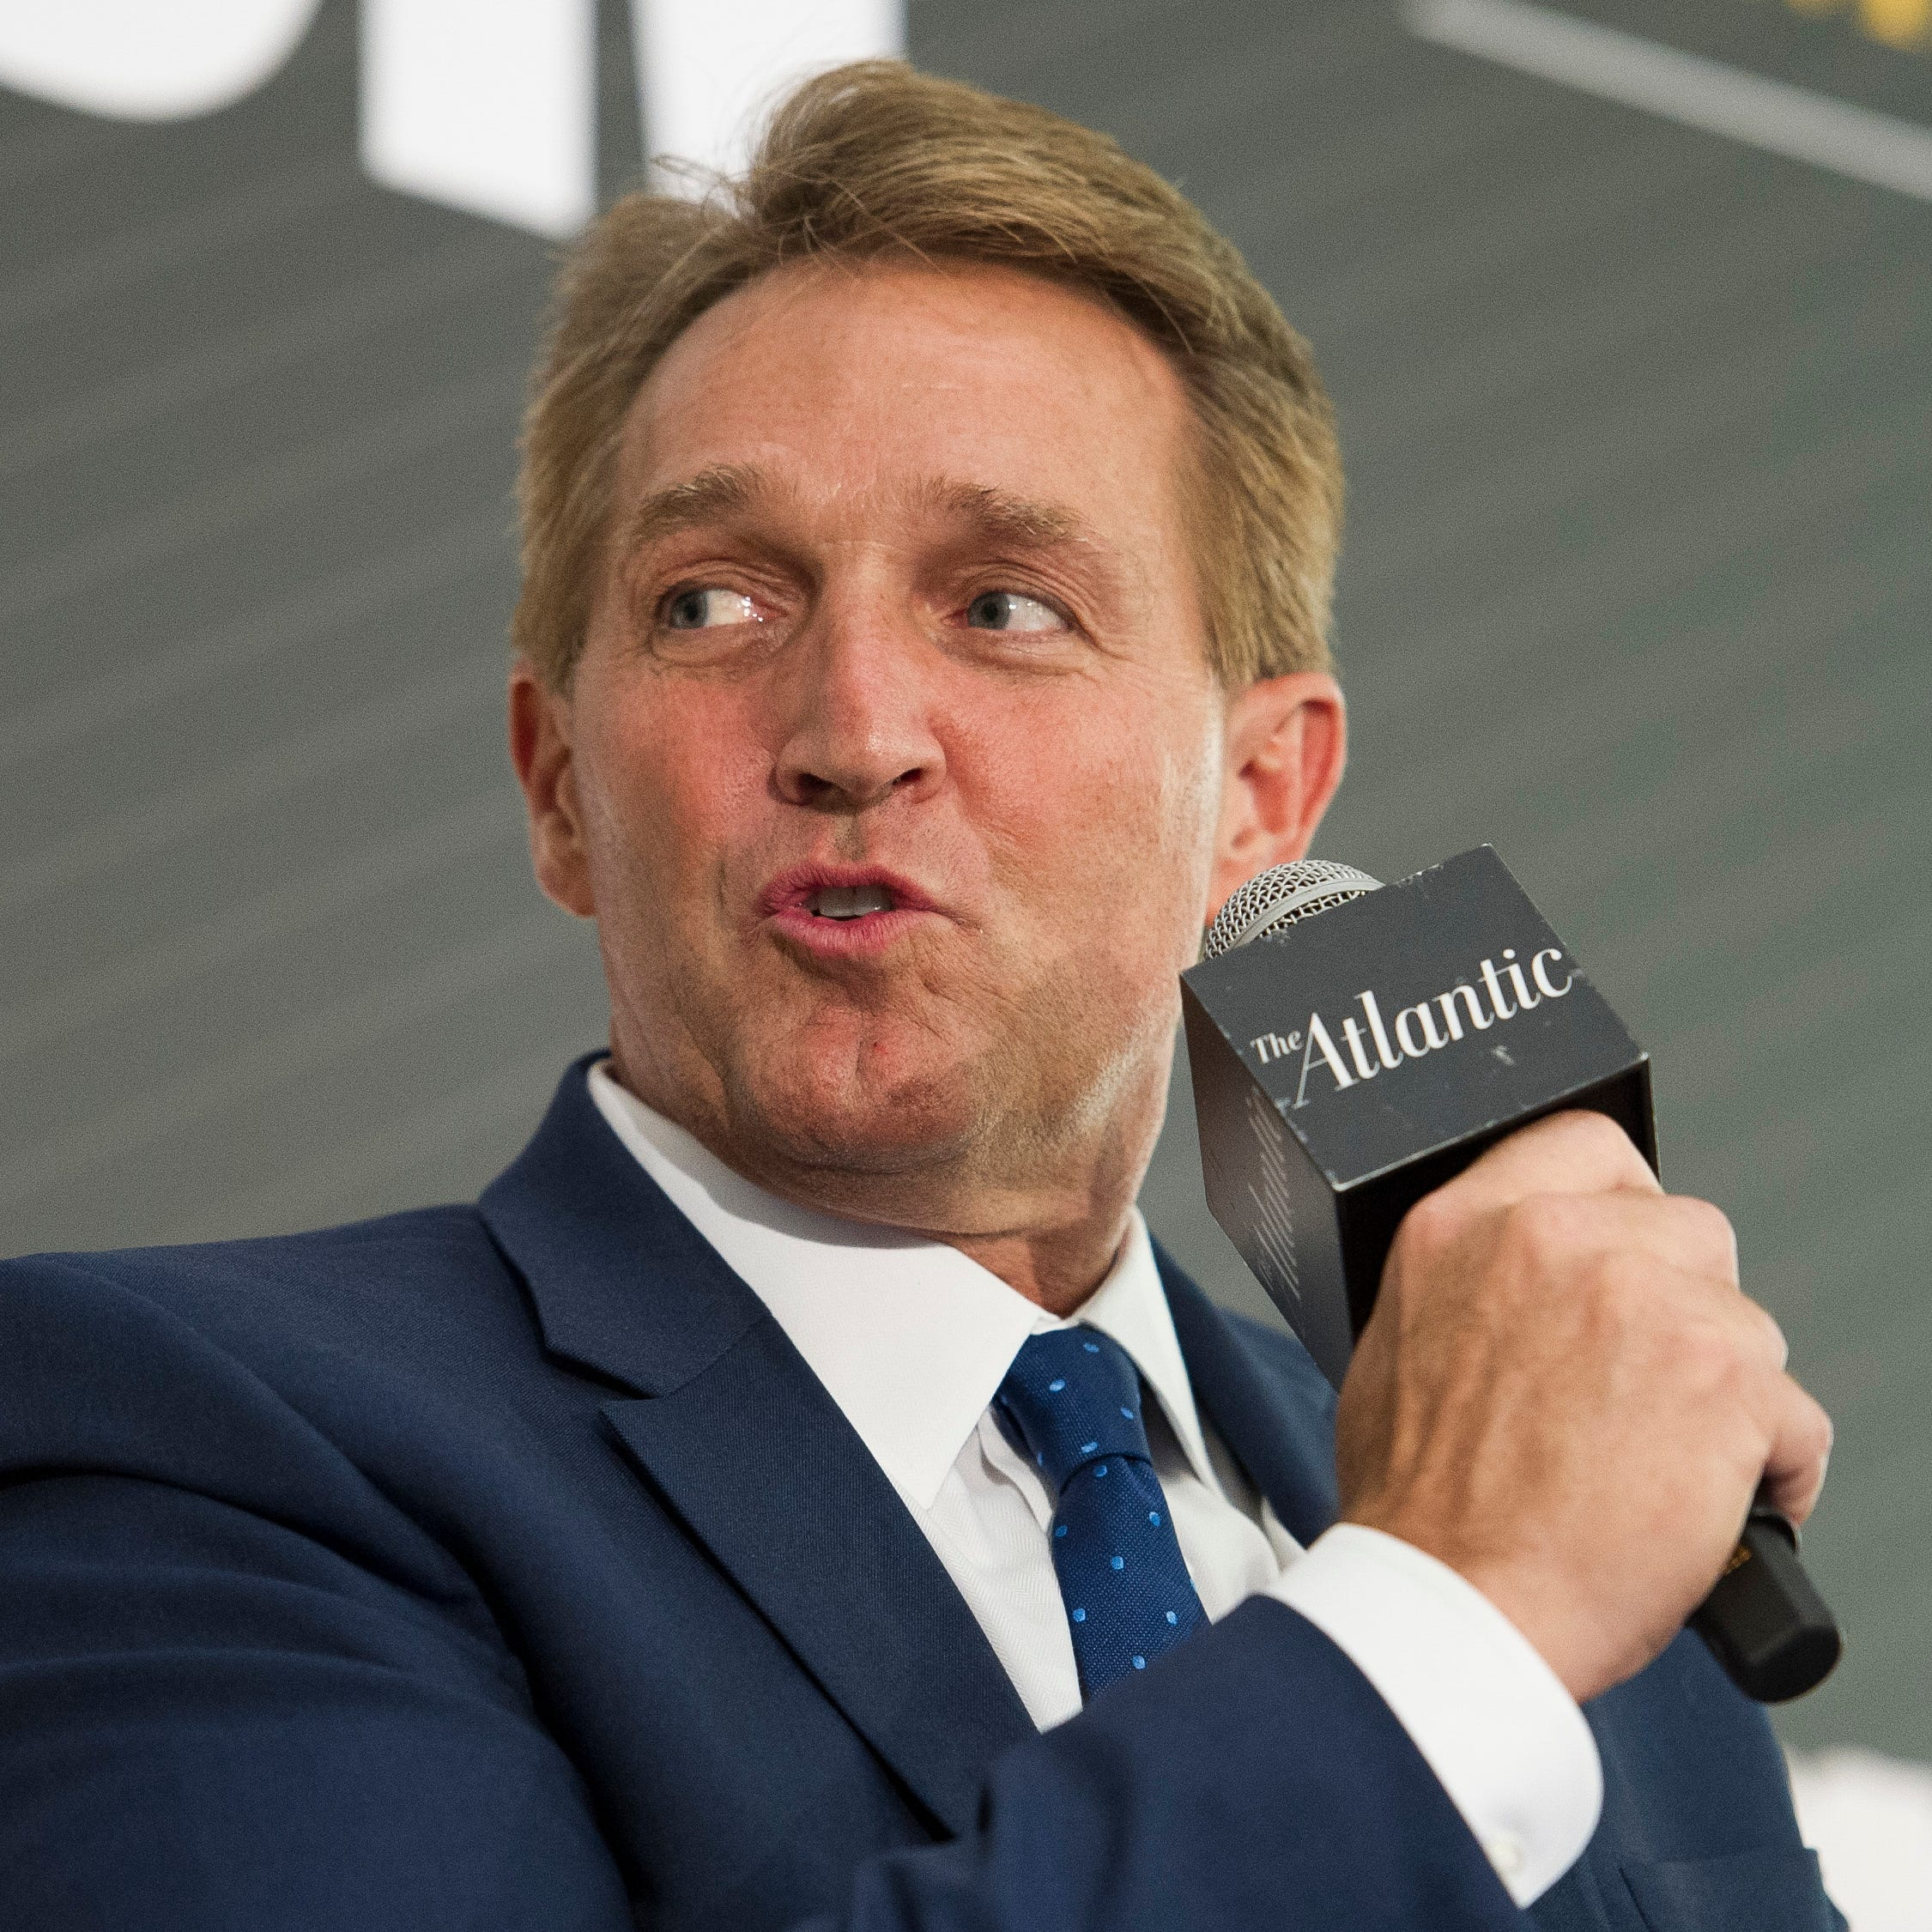 Jeff Flake explains why he calls out Trump but votes for his policies